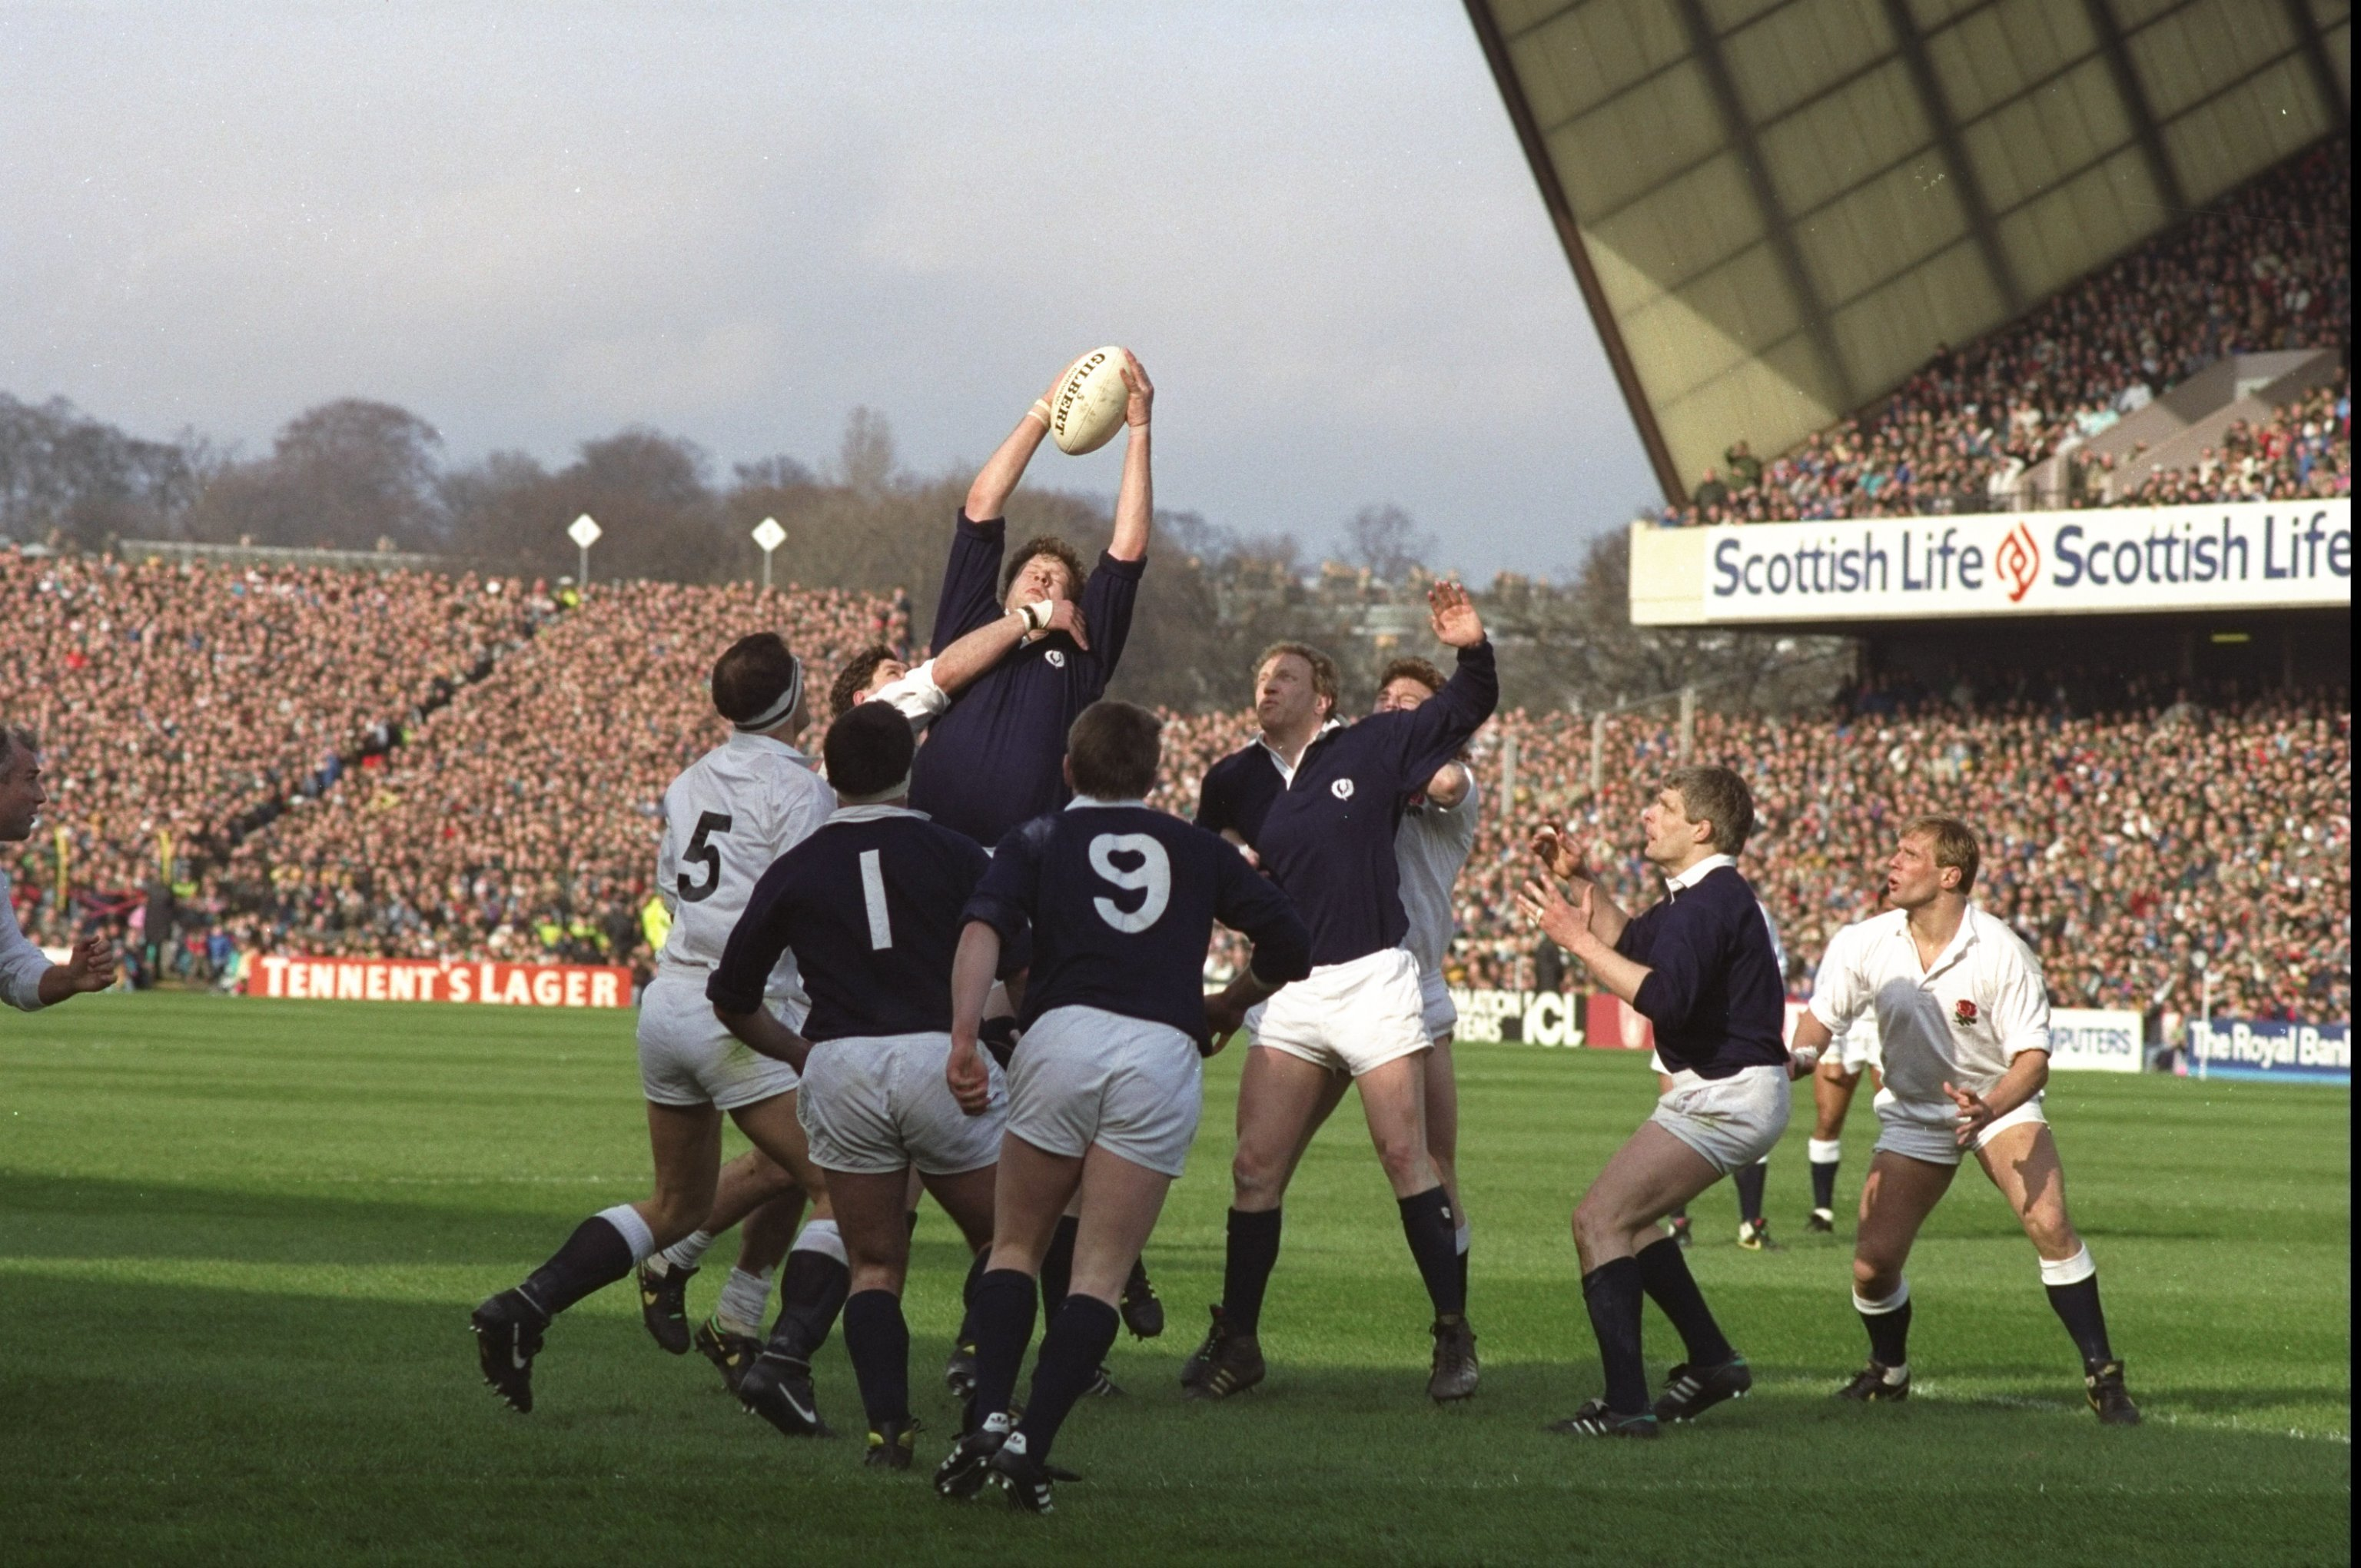 Damian Cronin (centre high) of Scotland wins the ball in a crucial line out during the 1990 Five Nations Championship match against England at Murrayfield in Edinburgh. Credit: David  Cannon/Allsport